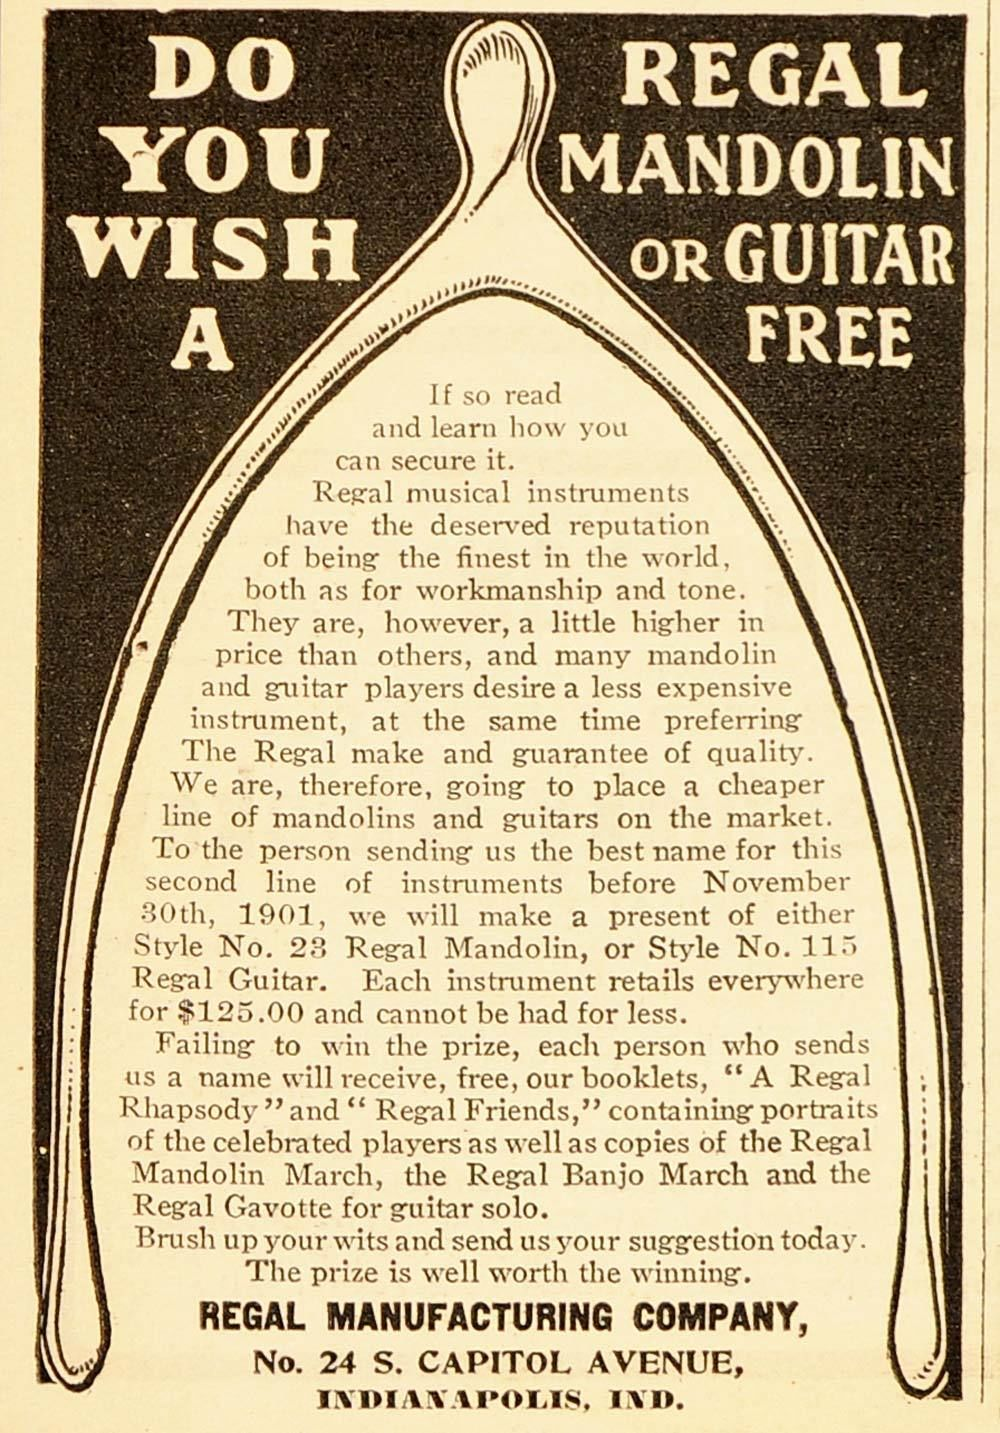 Sunday Adverts: Long gone Regal Guitar Mfg. STILL has the perfect gift for you!